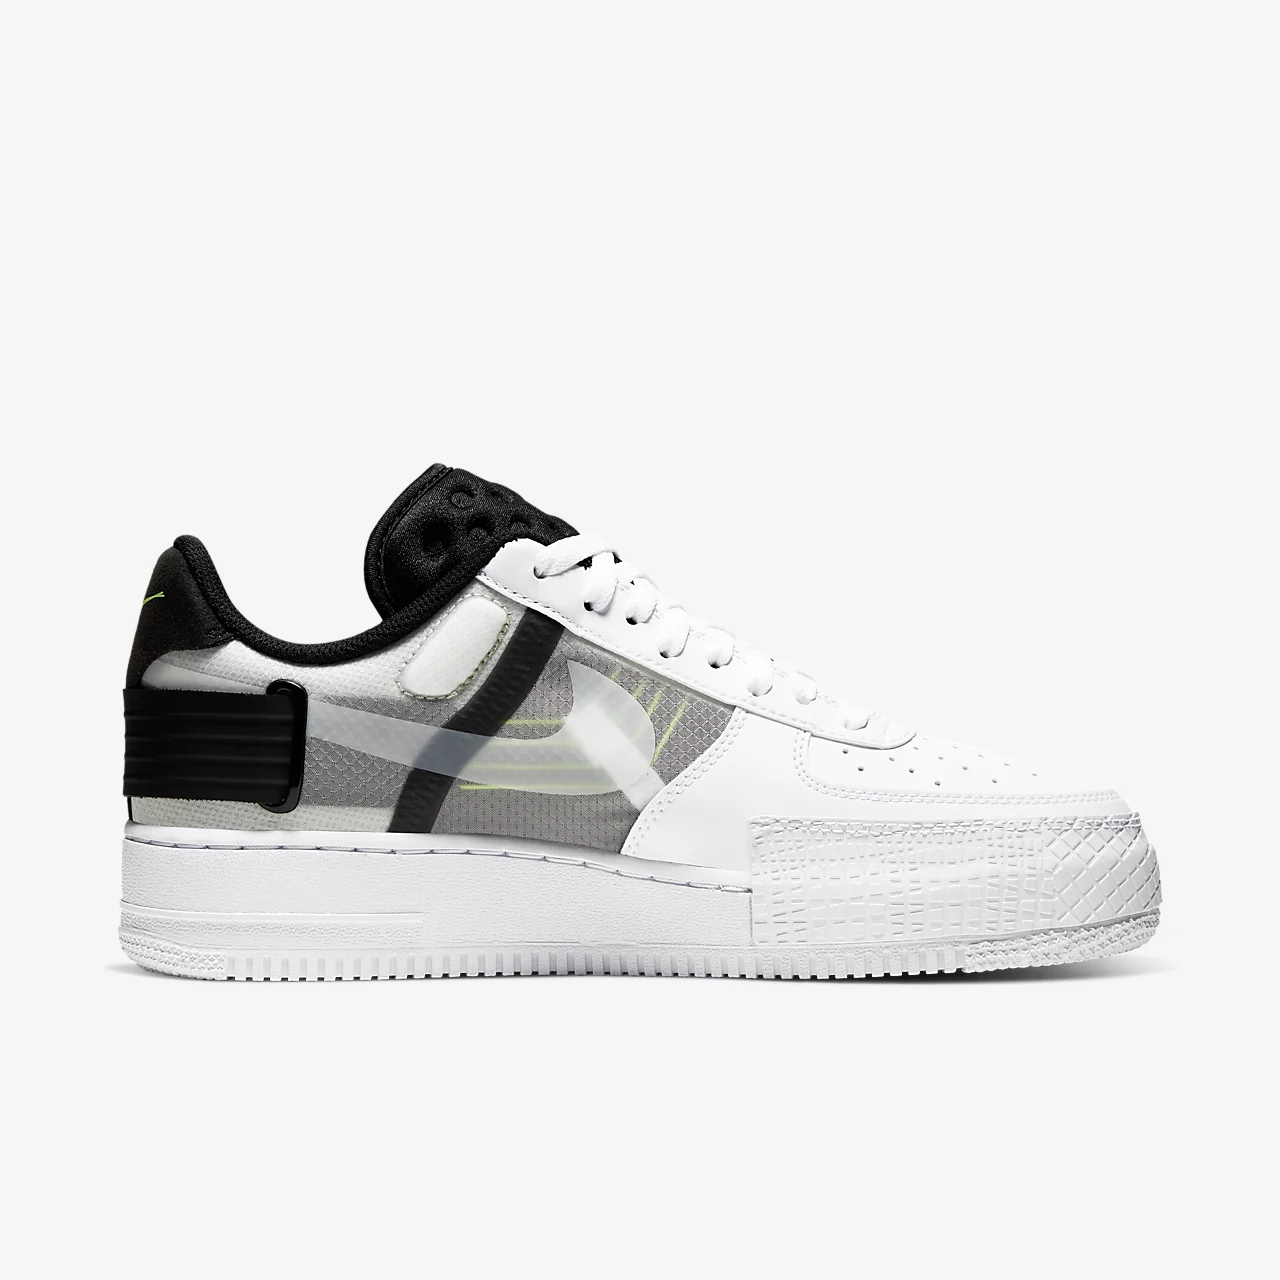 유럽직배송 나이키 NIKE Nike Air Force 1 Type Men's Shoe AT7859-101